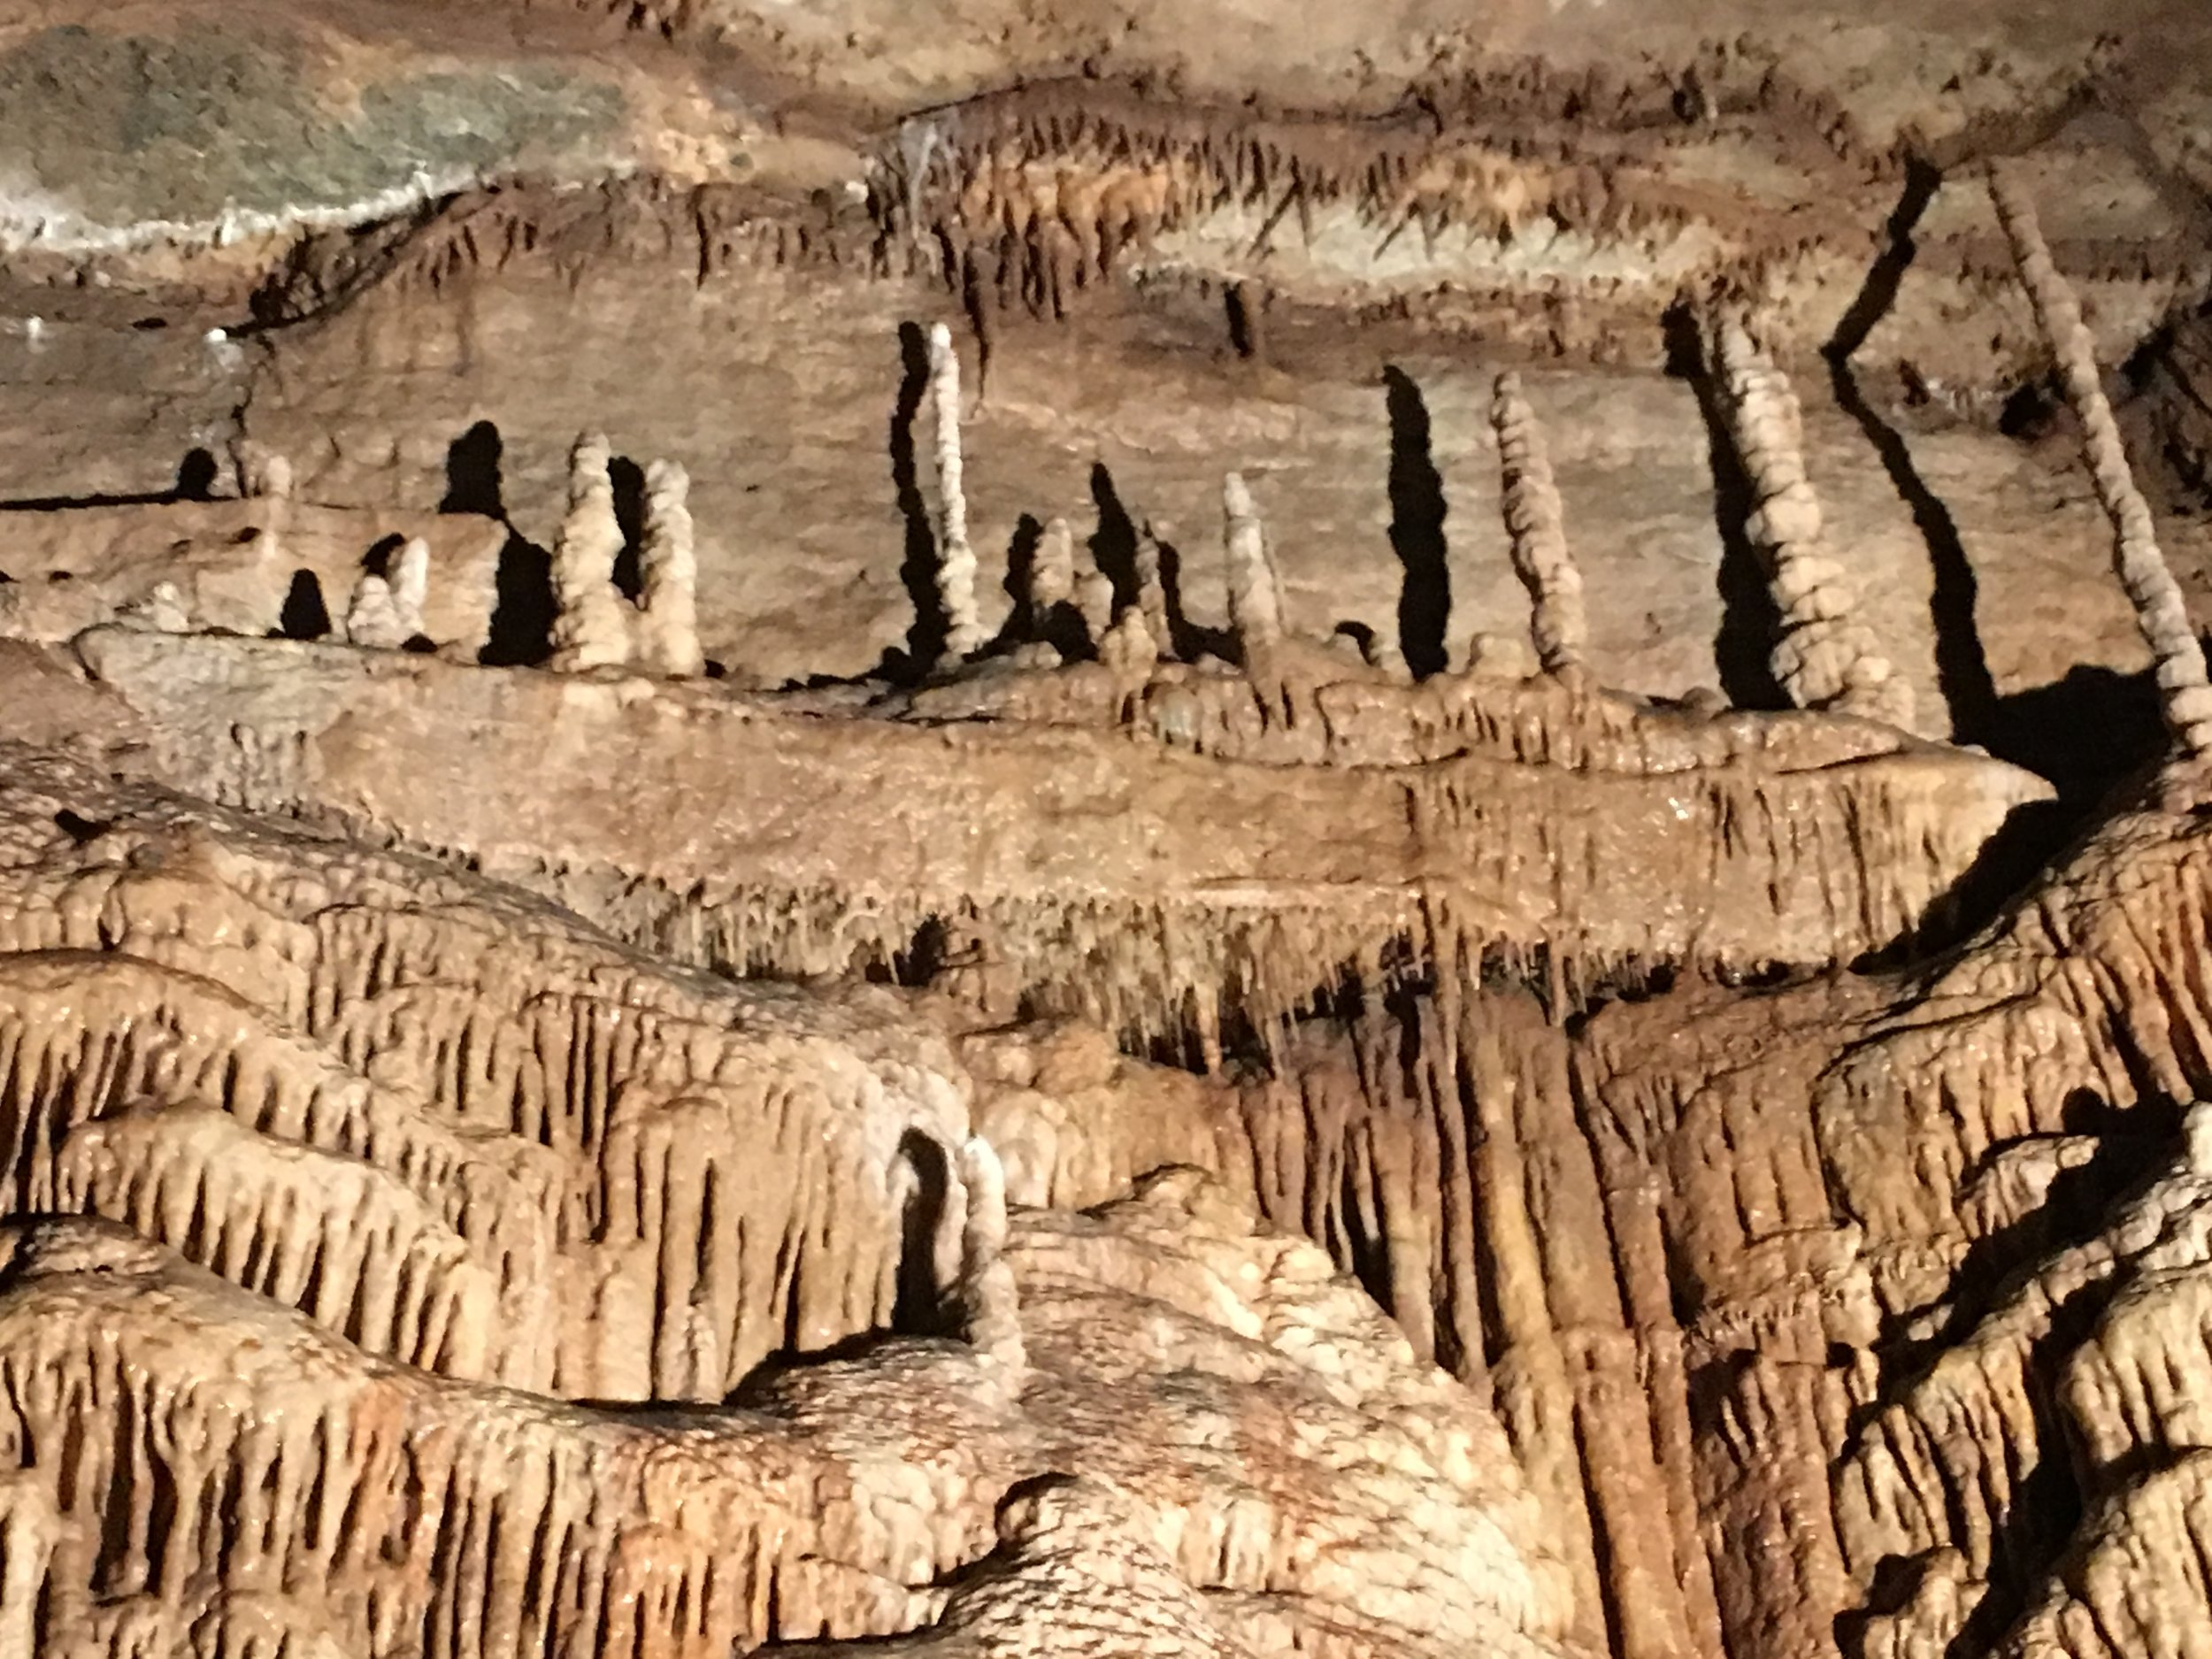 Blanchard Caverns, Arkansas